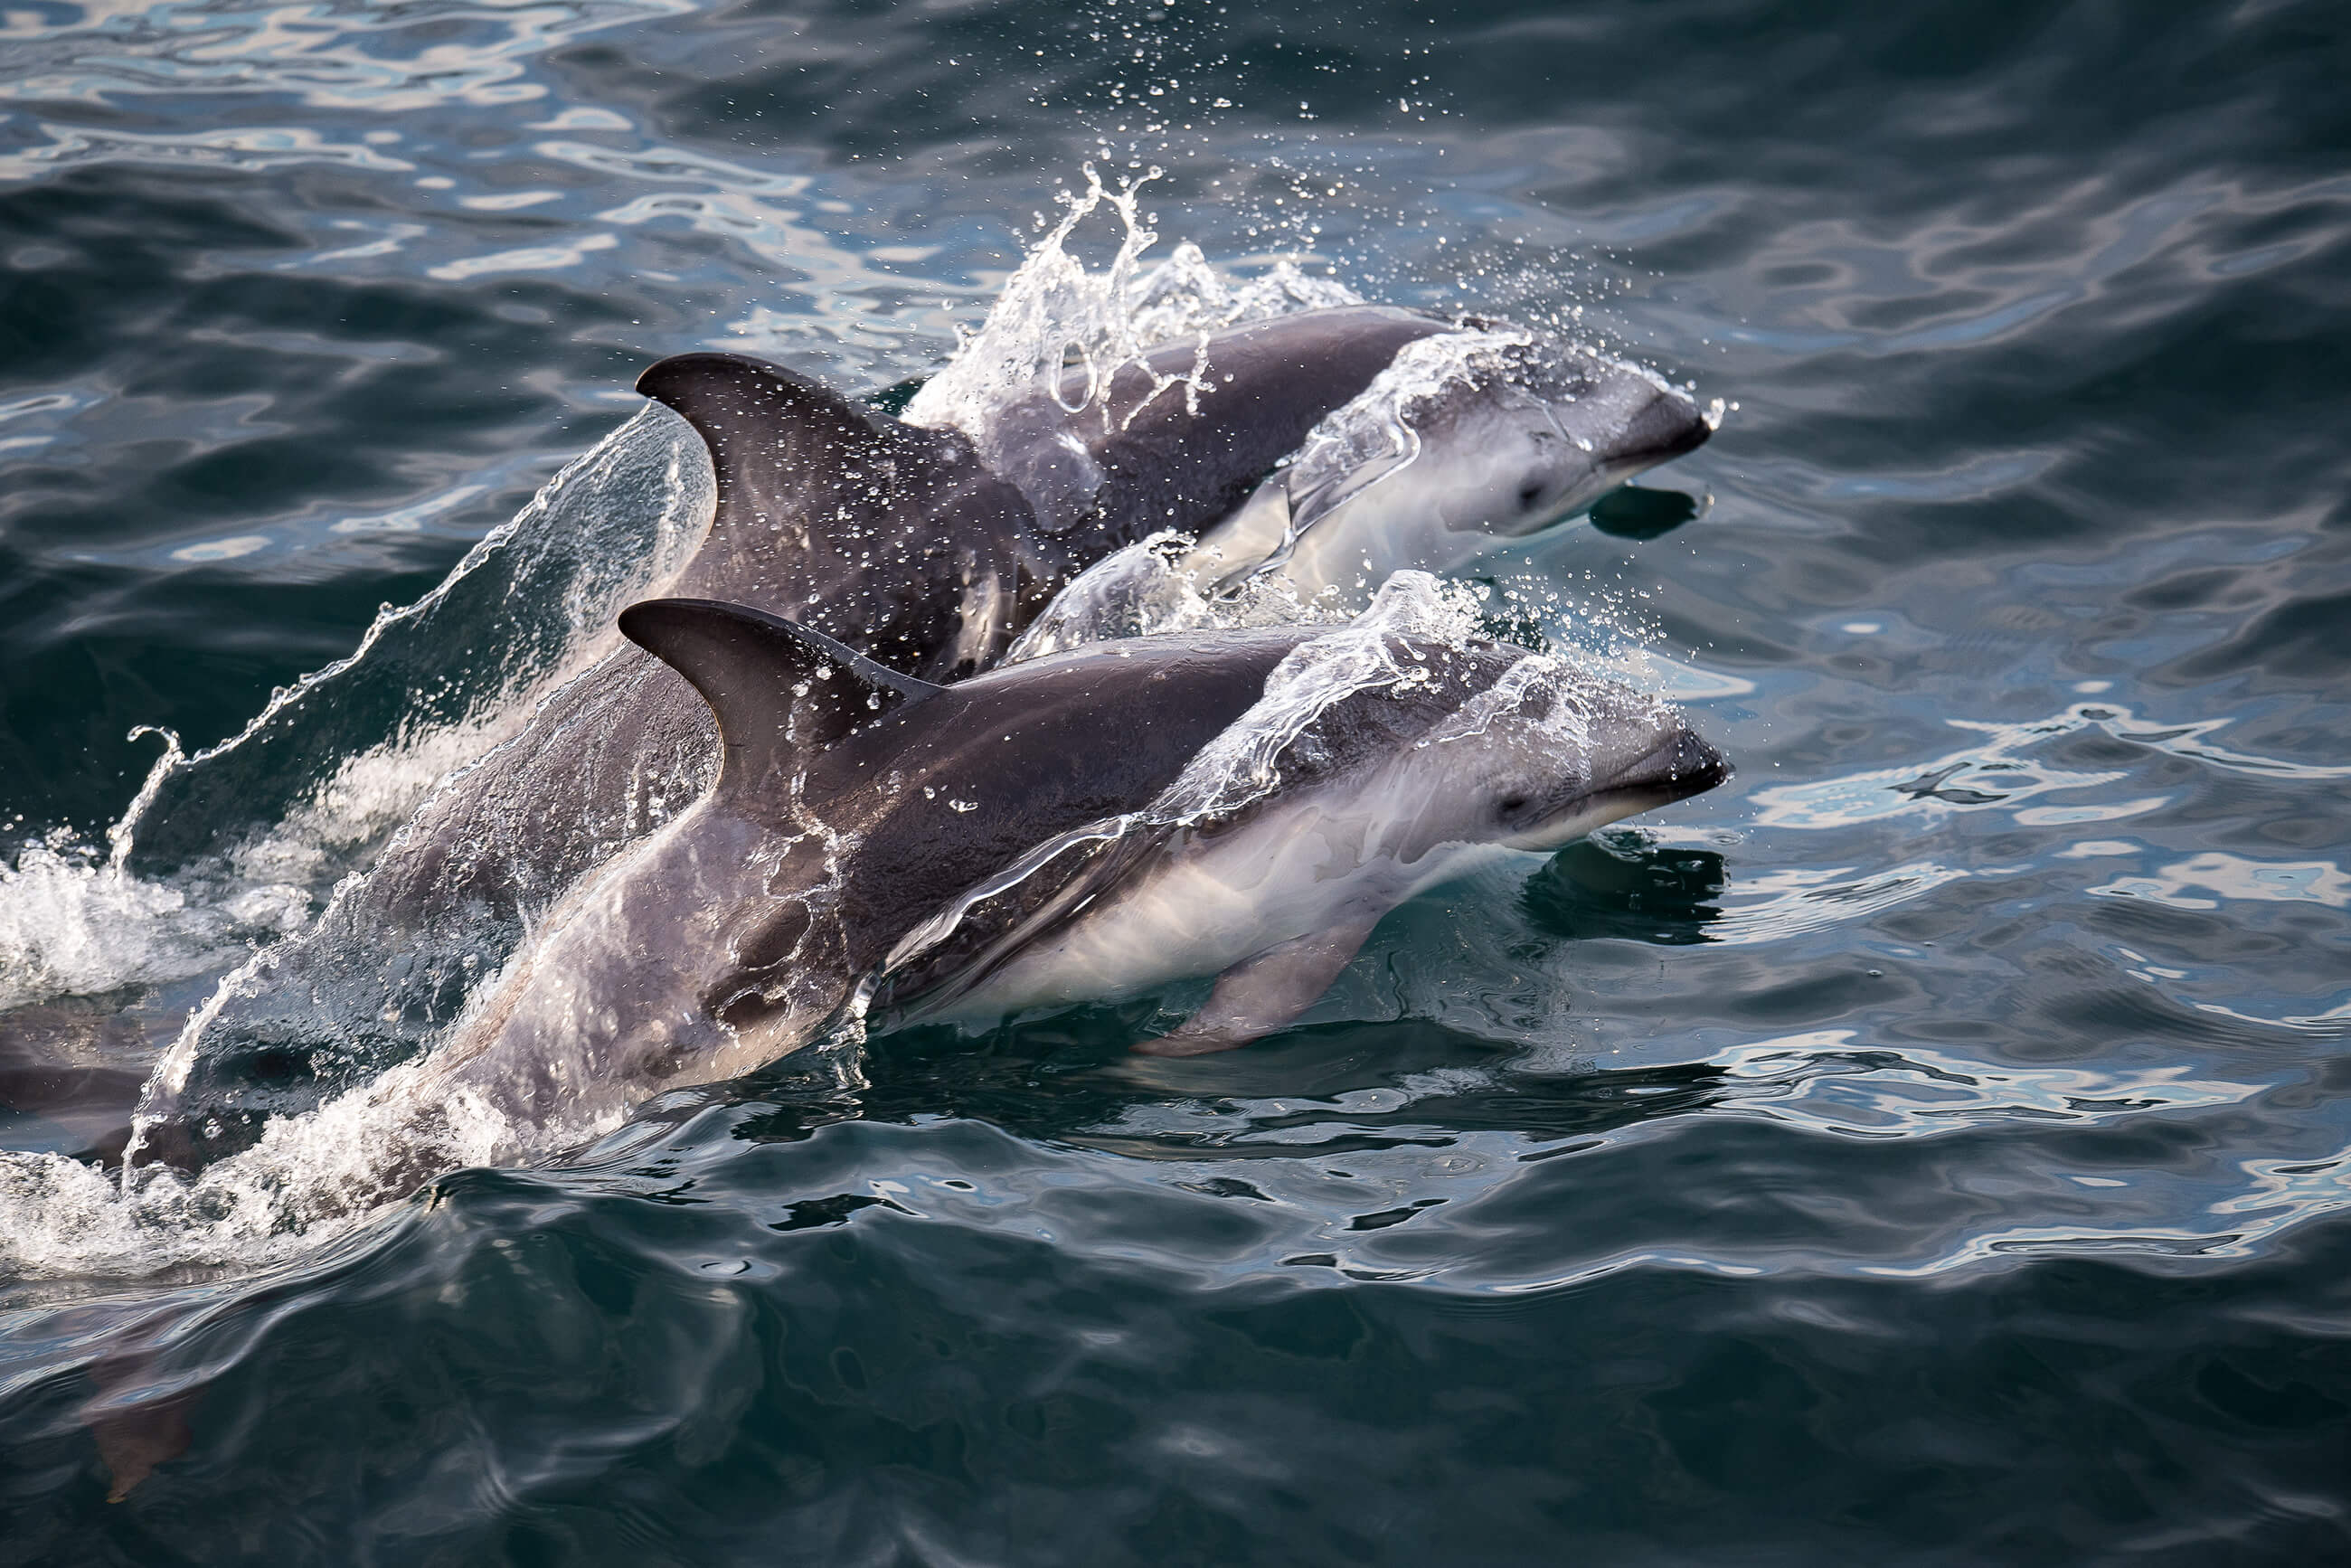 https://bubo.sk/uploads/galleries/7344/dolphin-puerto-madryn-patagonia-hgr-112300--photo_andreas_kalvig_anderson.jpg